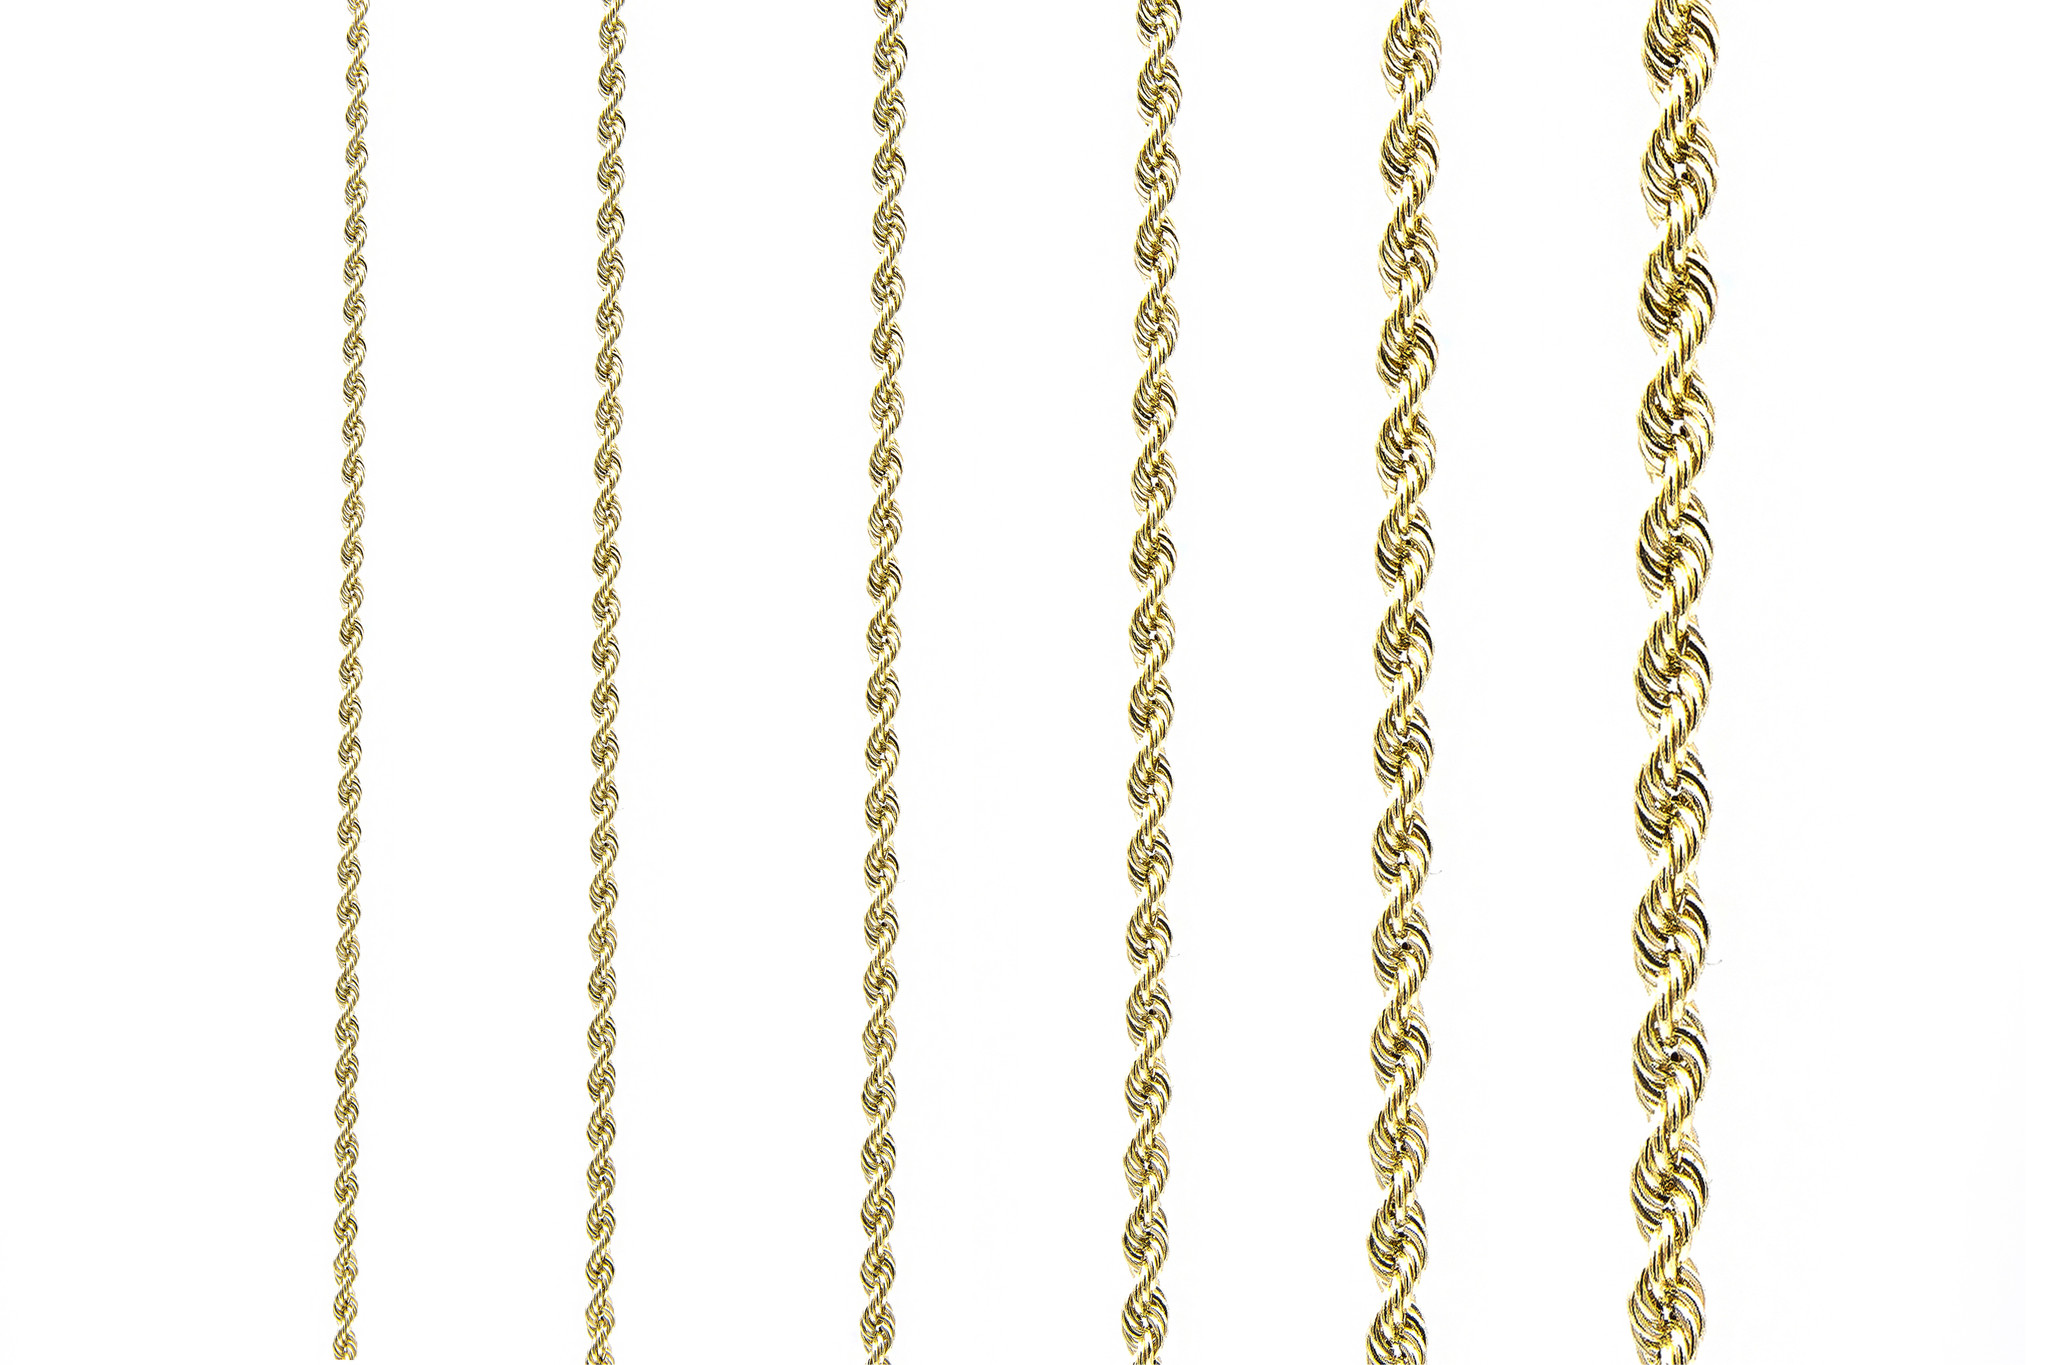 Rope Chain 14k - 3,5 mm-3